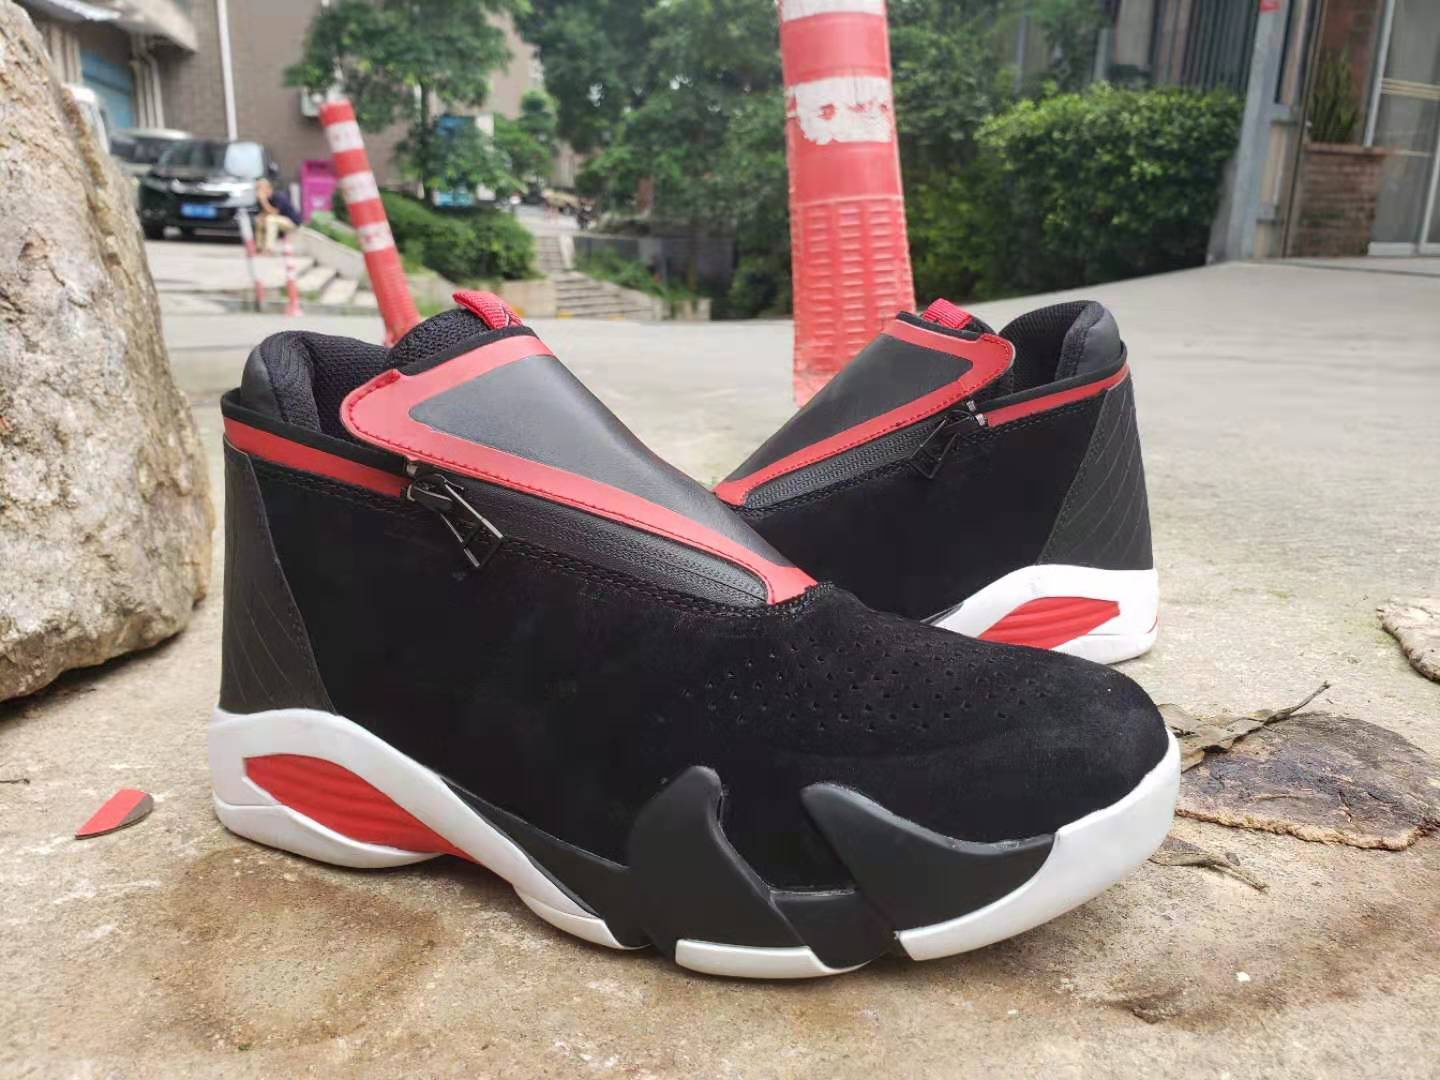 2019 Air Jordan 14 Zipper Black Red White Shoes